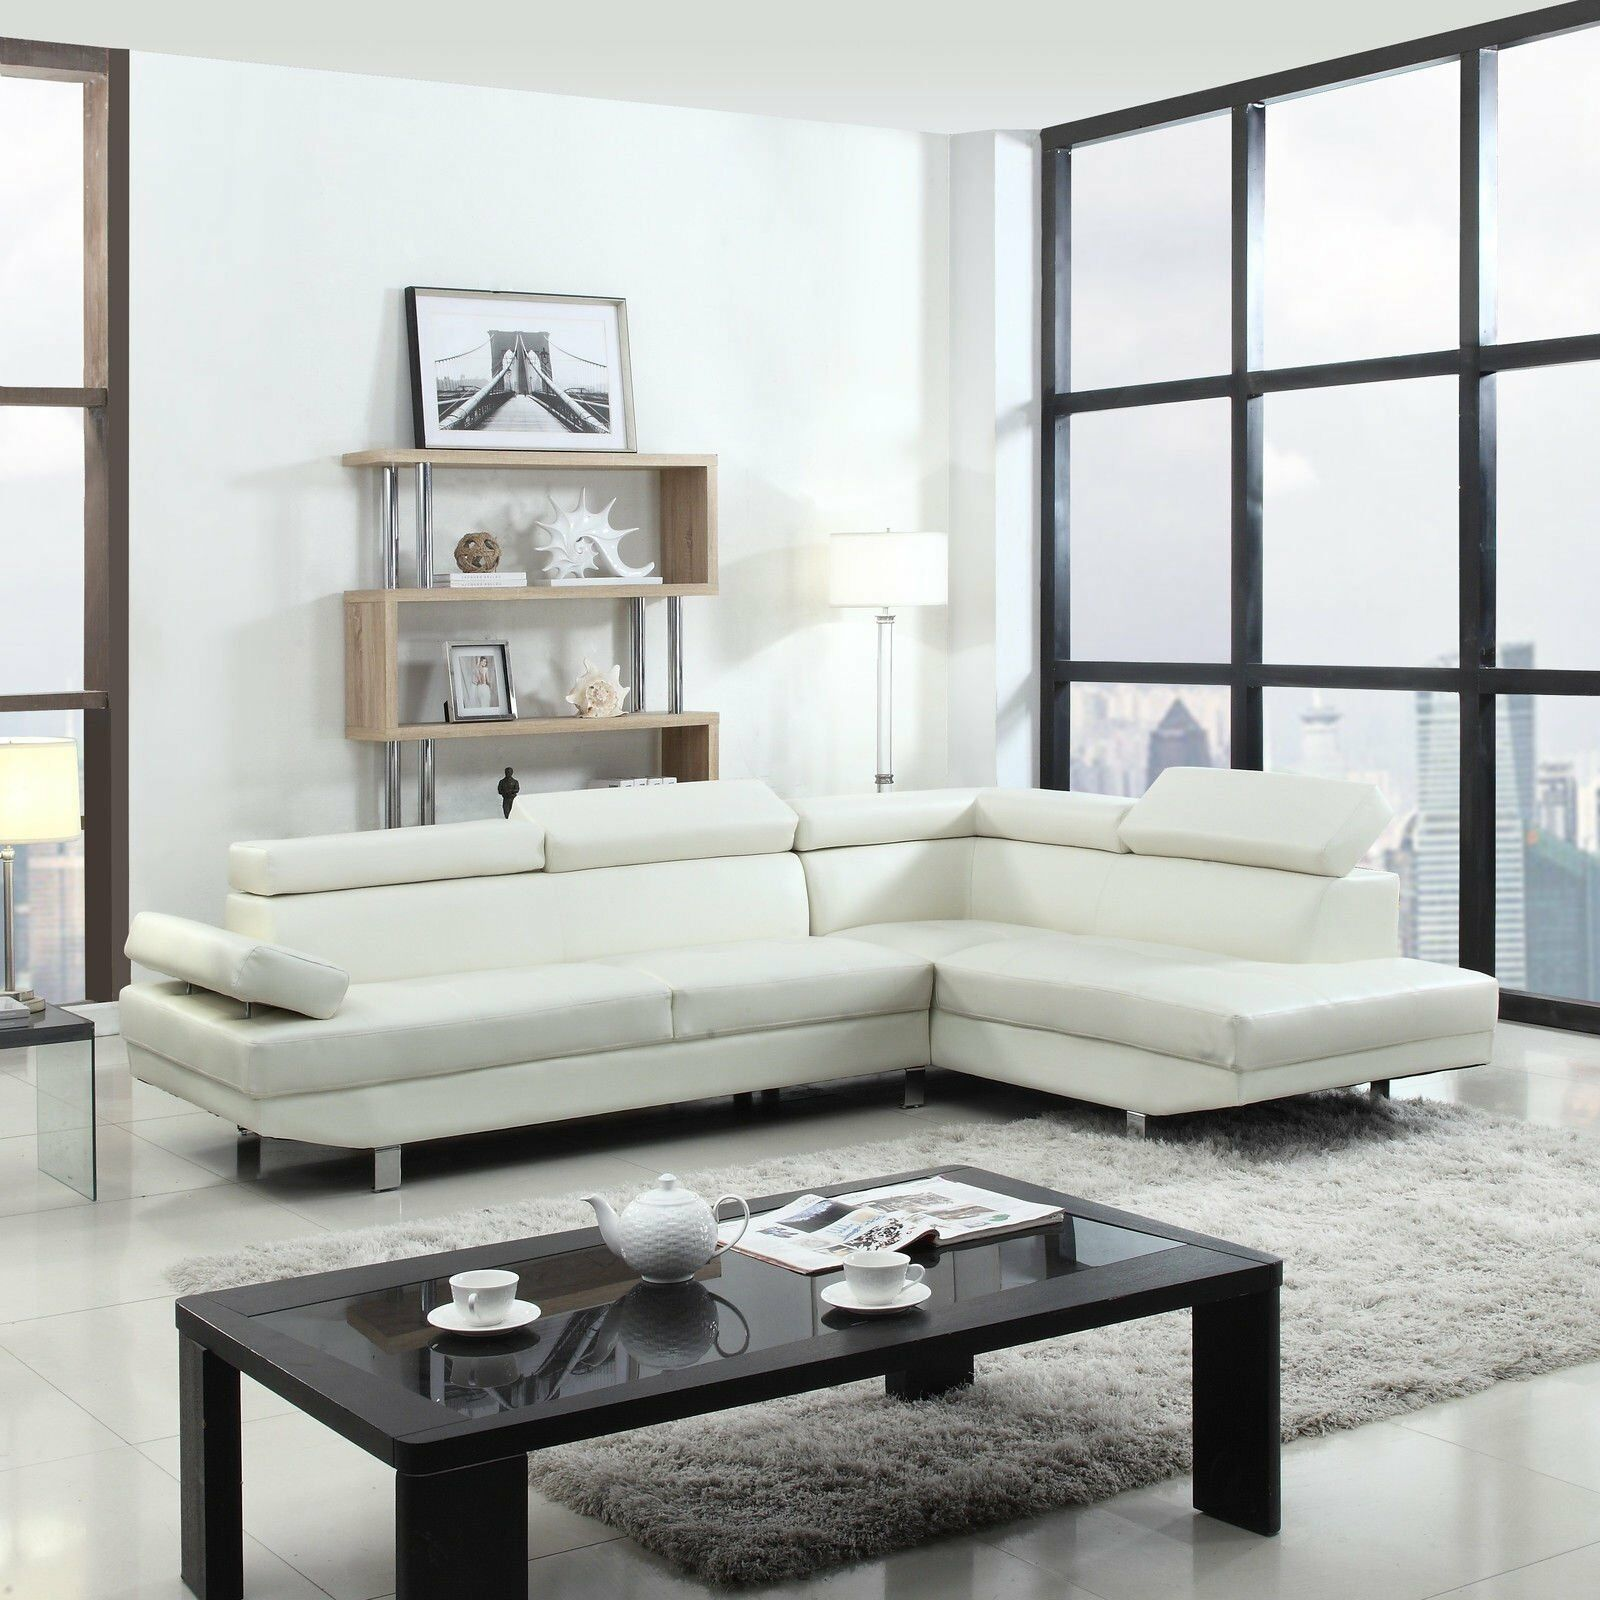 Modern Contemporary White Faux Leather Sectional Sofa, Living Room Set